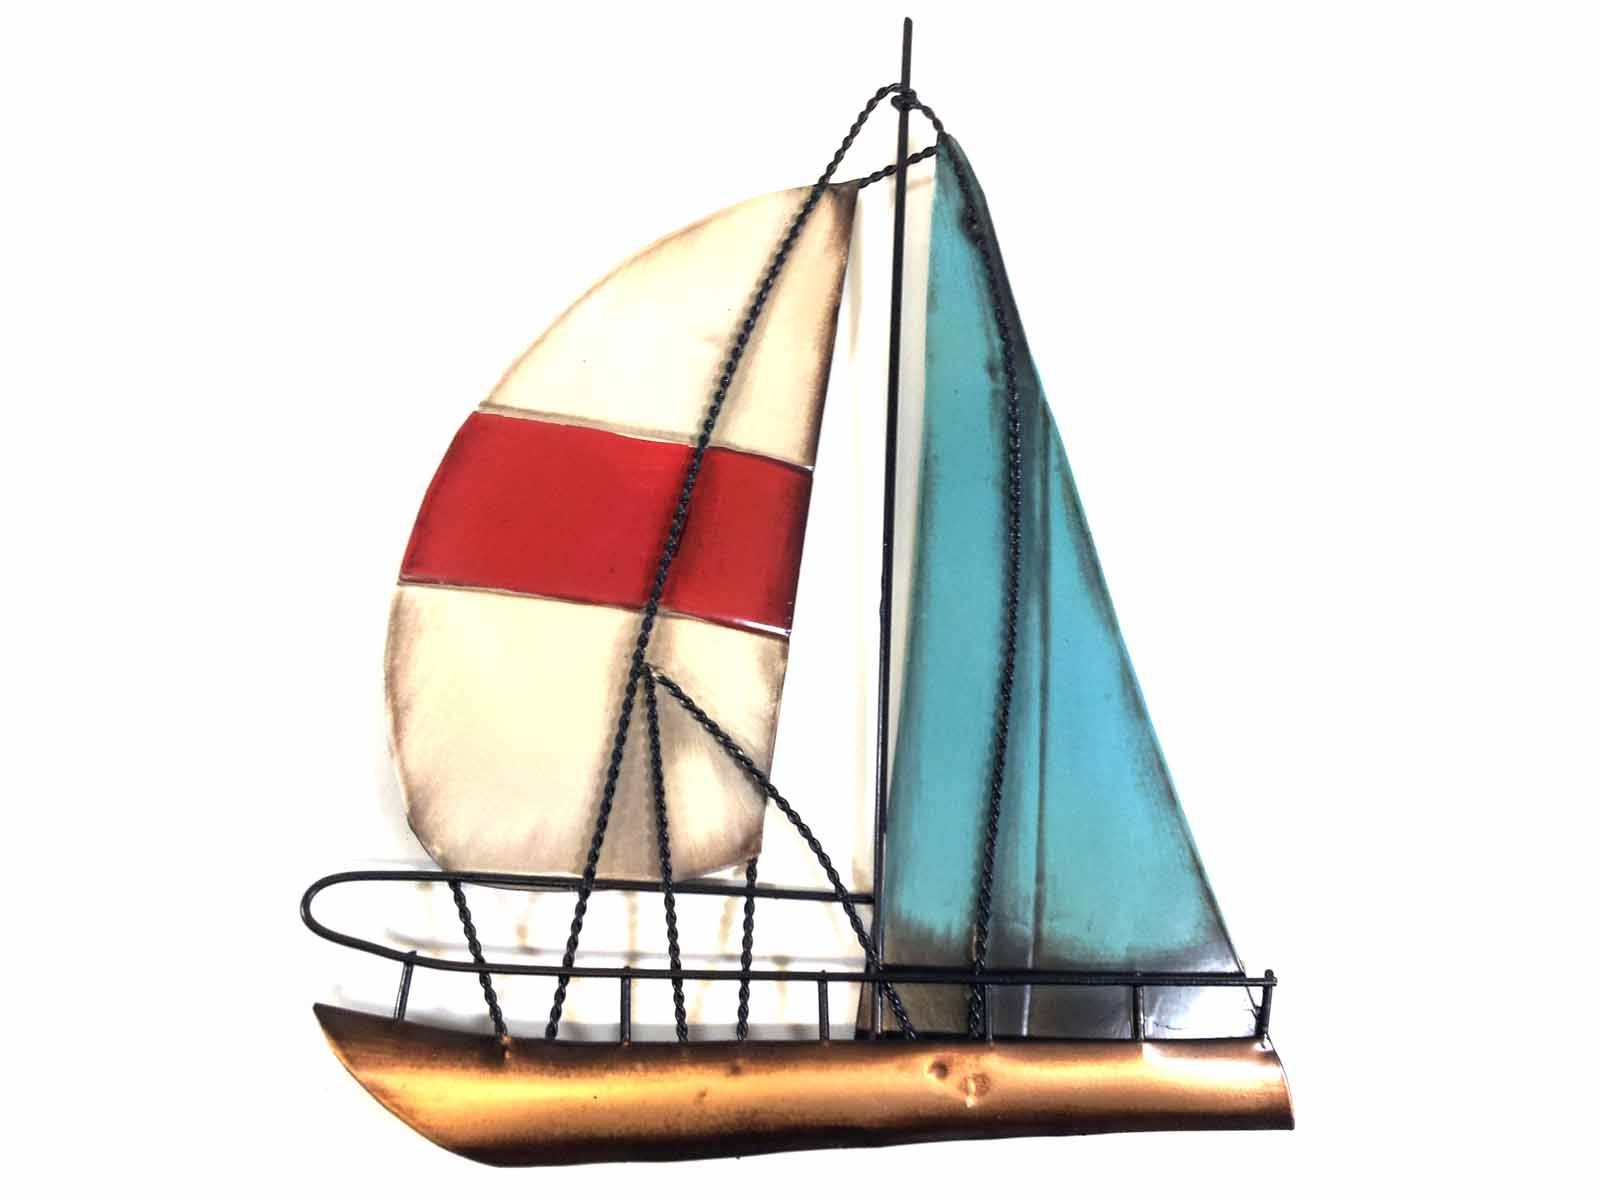 Brilliant Wall Art & Home Accessories – 21 Photos – Company – Within Best And Newest Sailboat Metal Wall Art (View 14 of 30)